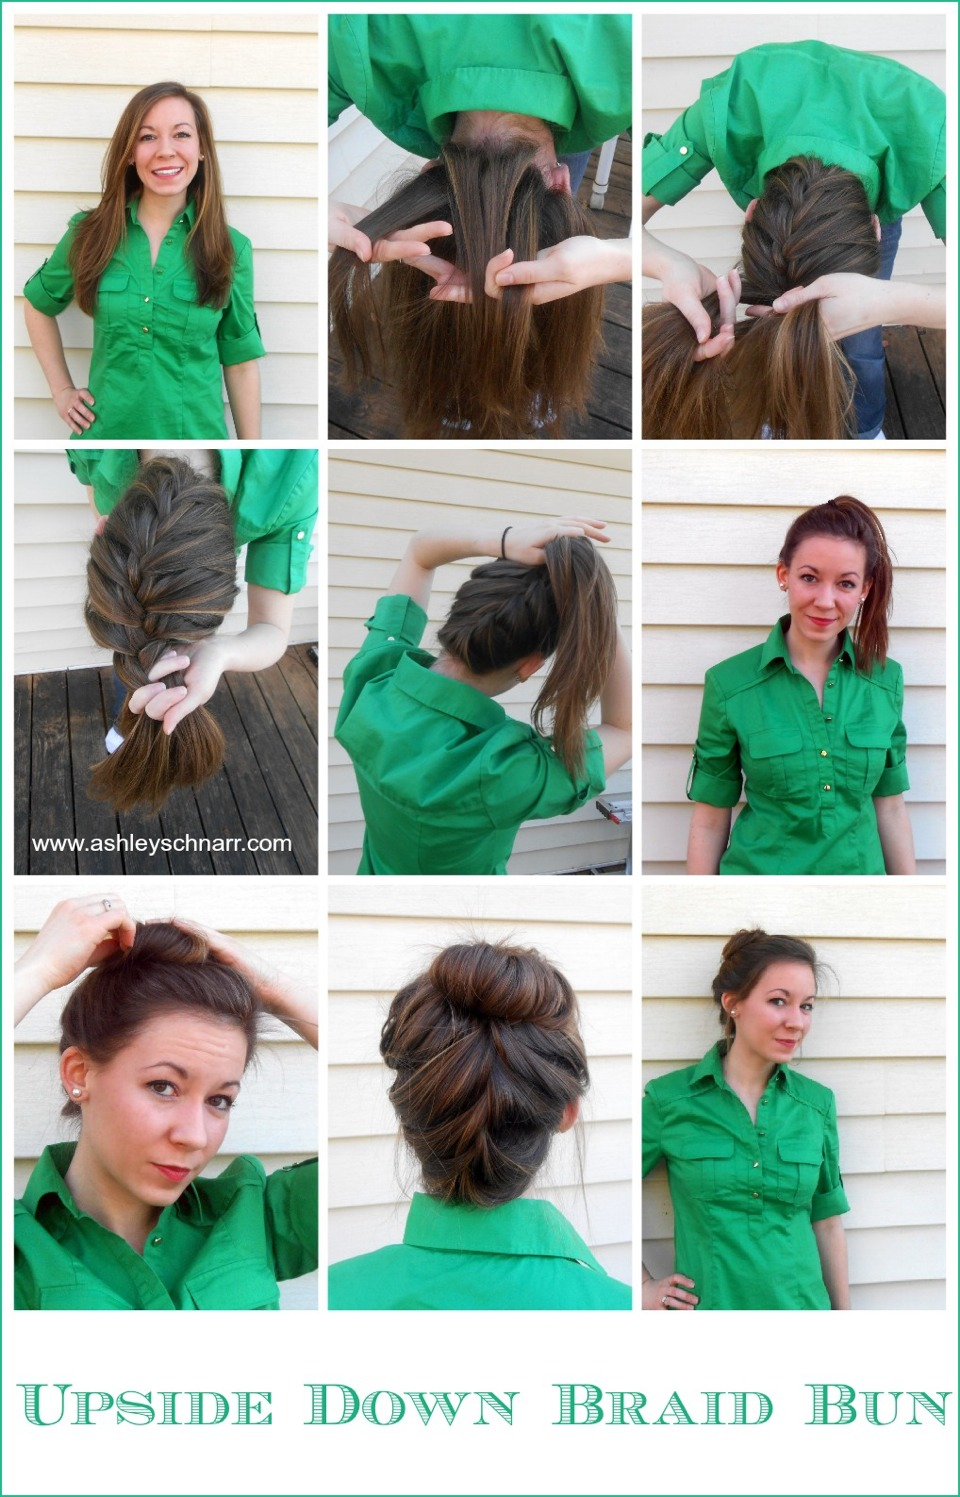 Upside-down braided bun